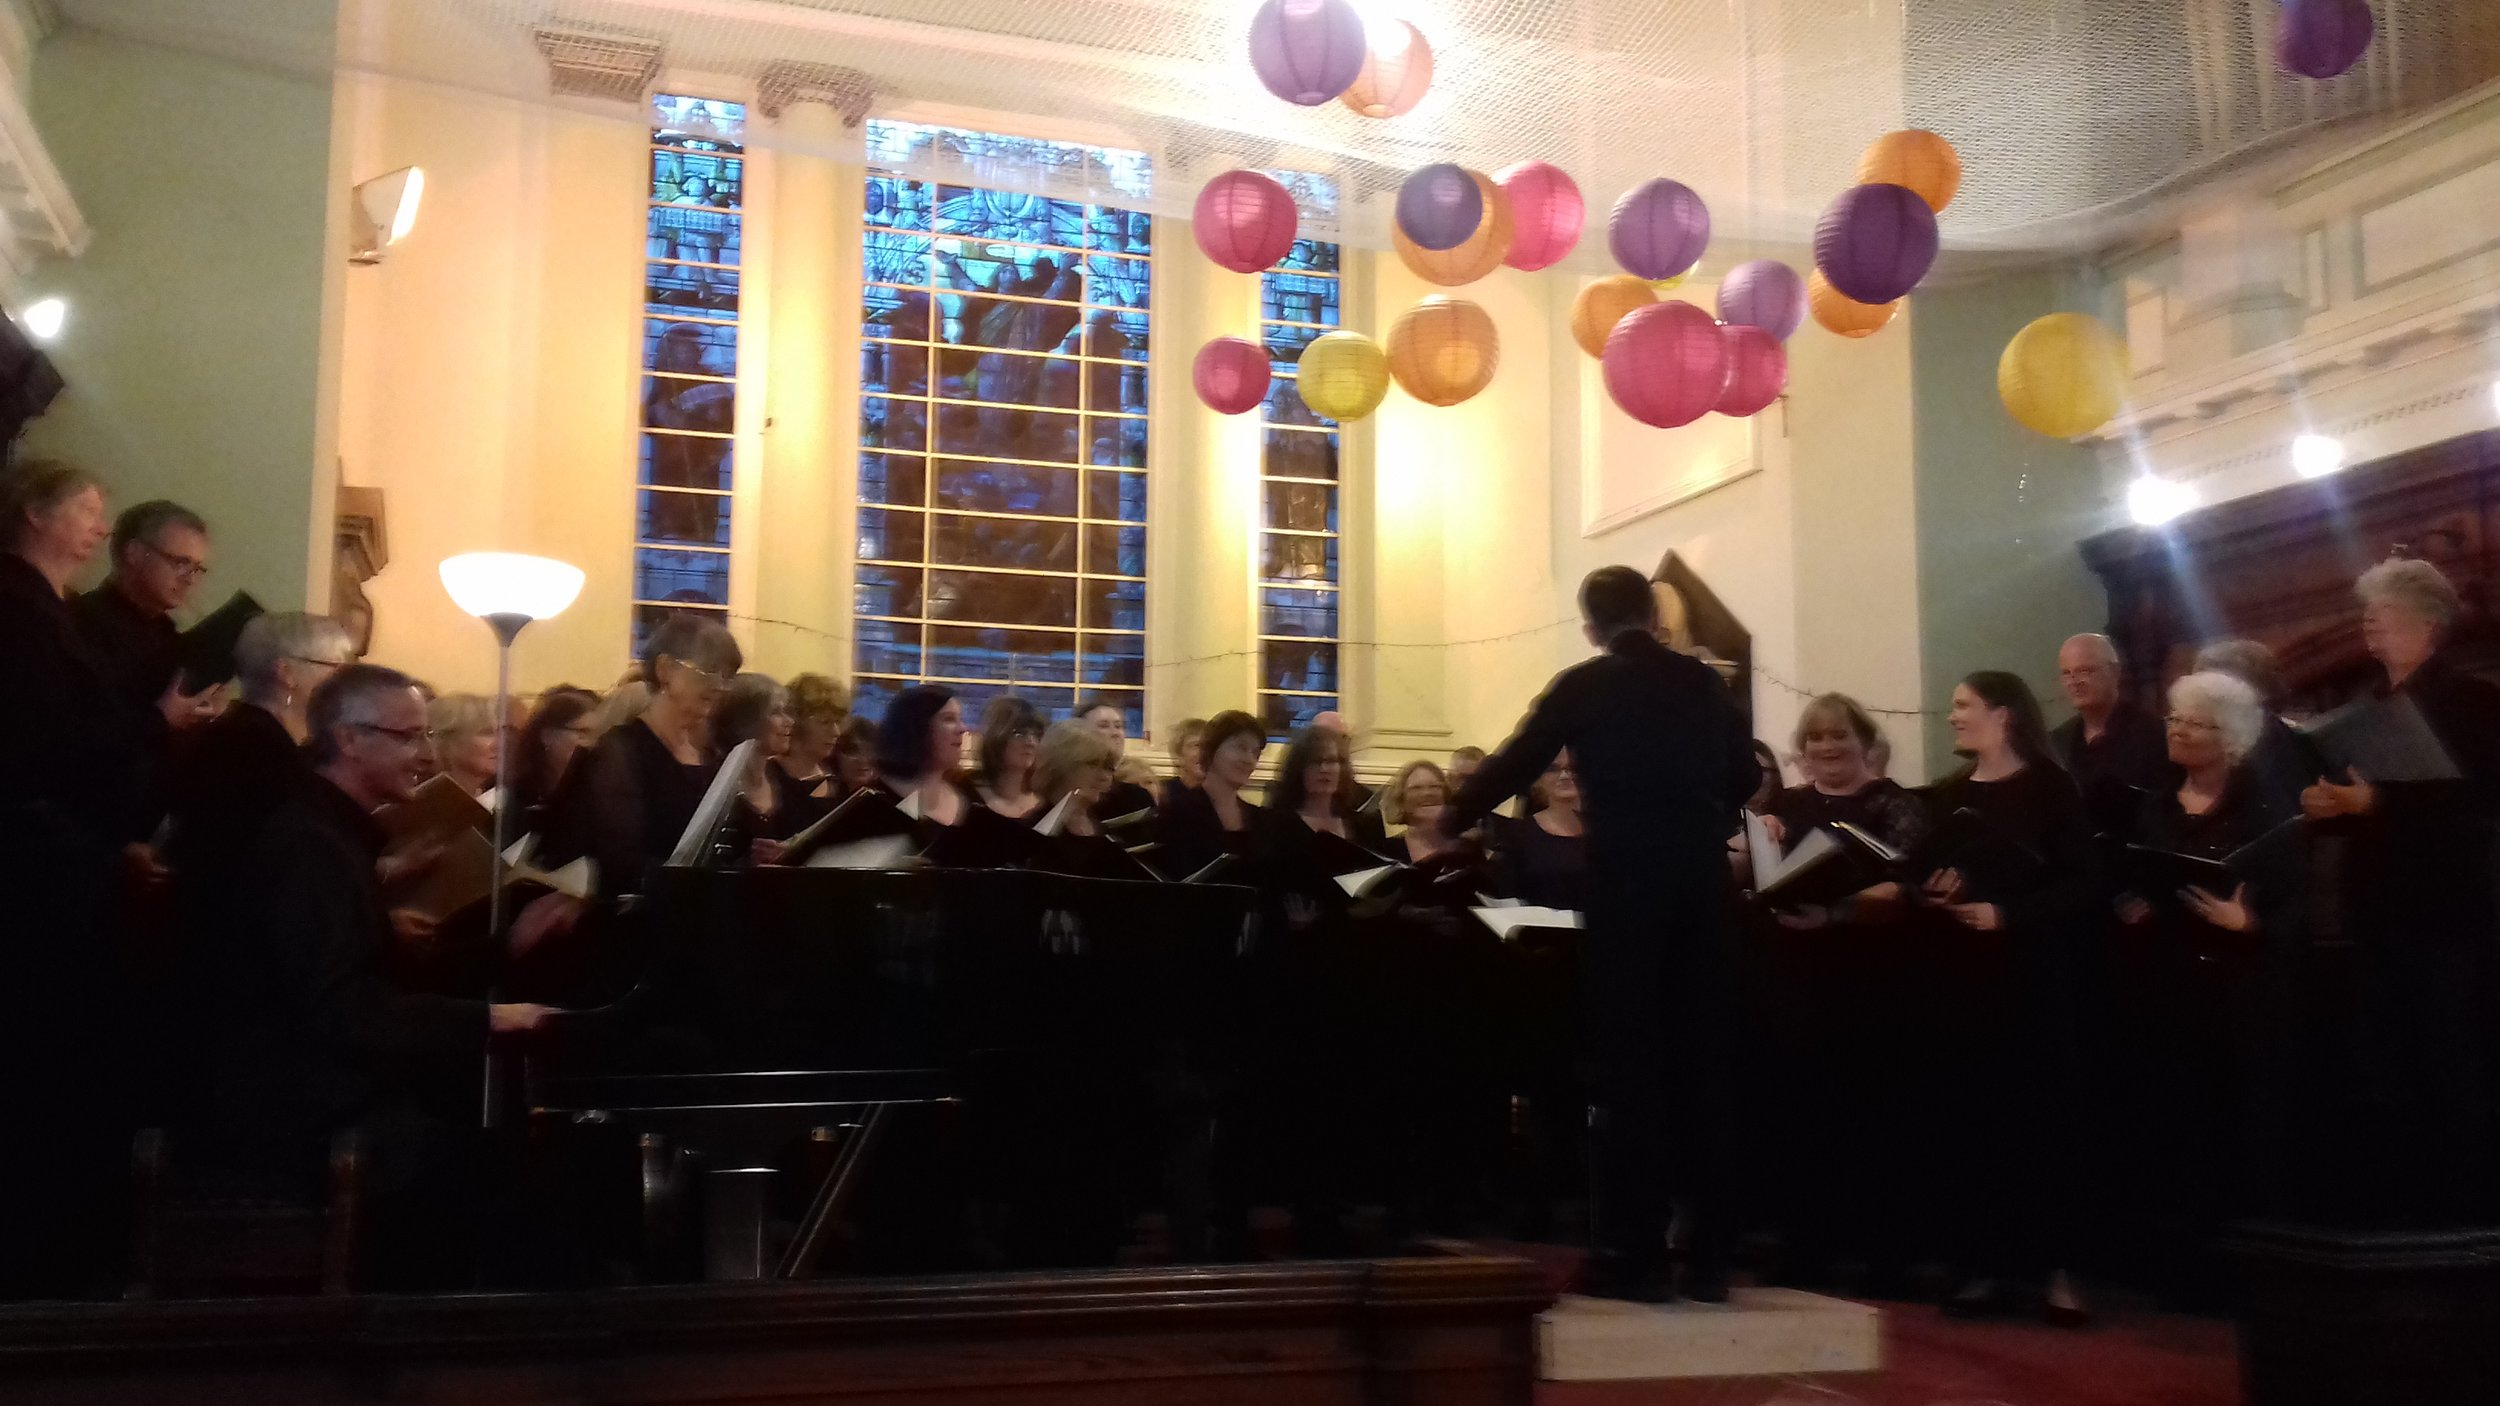 Great acoustics make our church an excellent performance venue